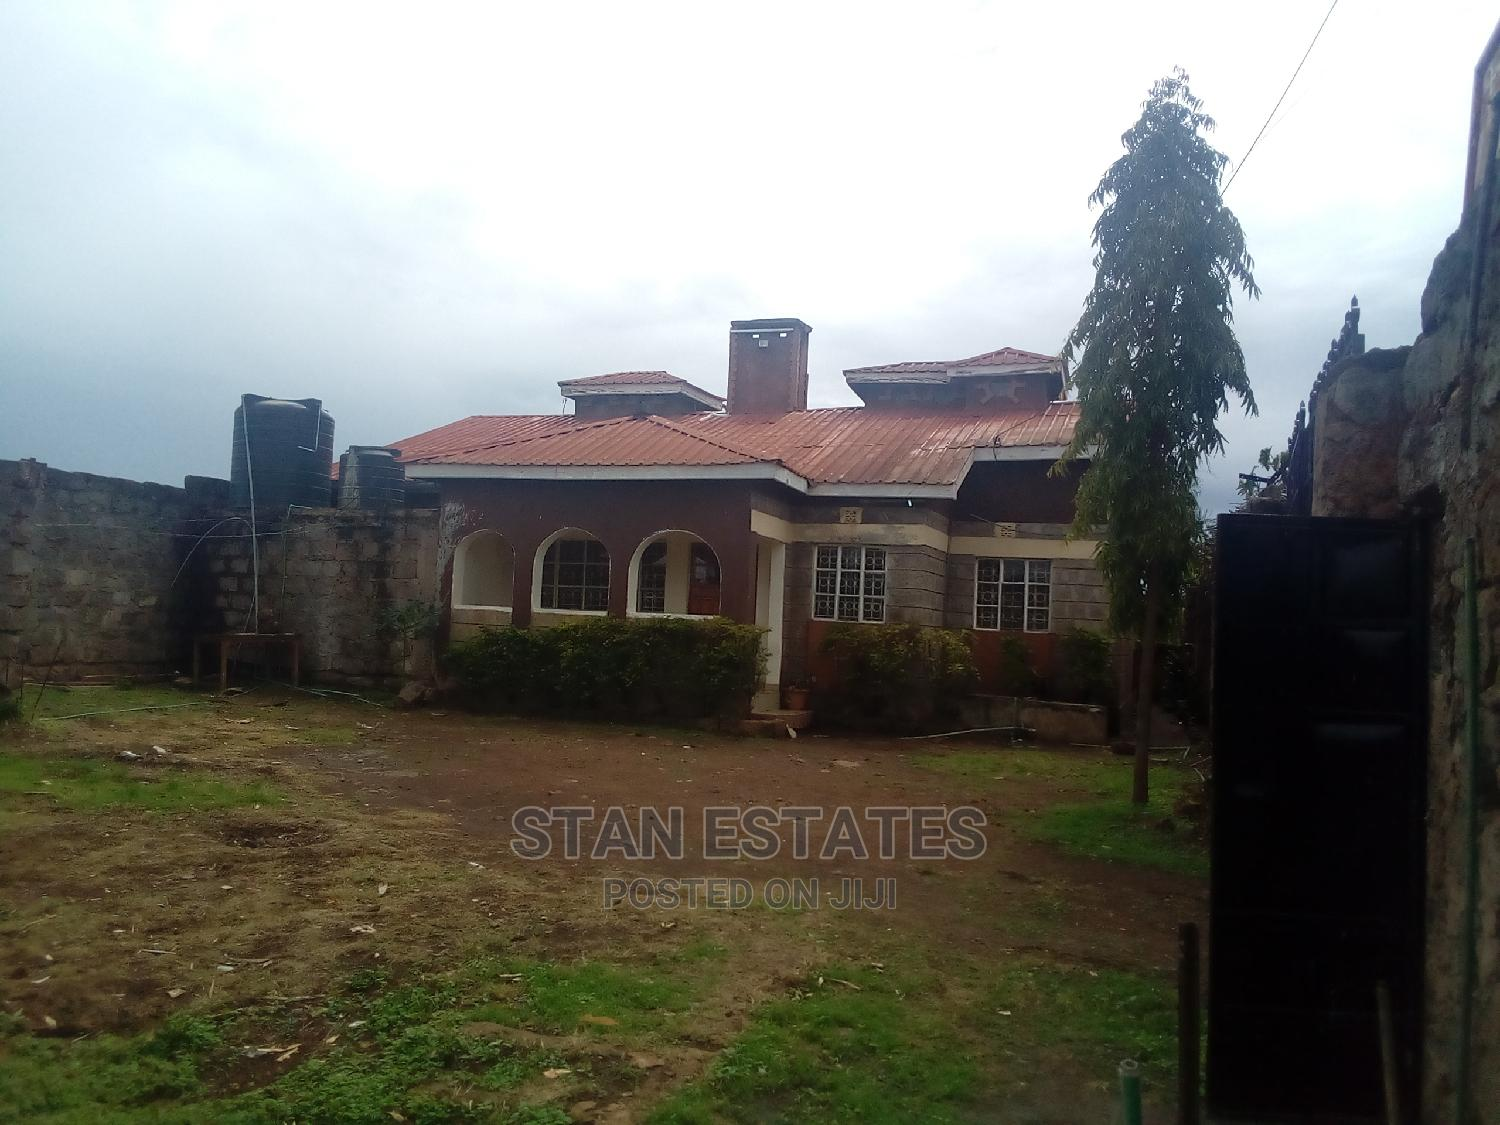 Archive: 3 Bedroom Farm House Sitting on 1/4 Acre